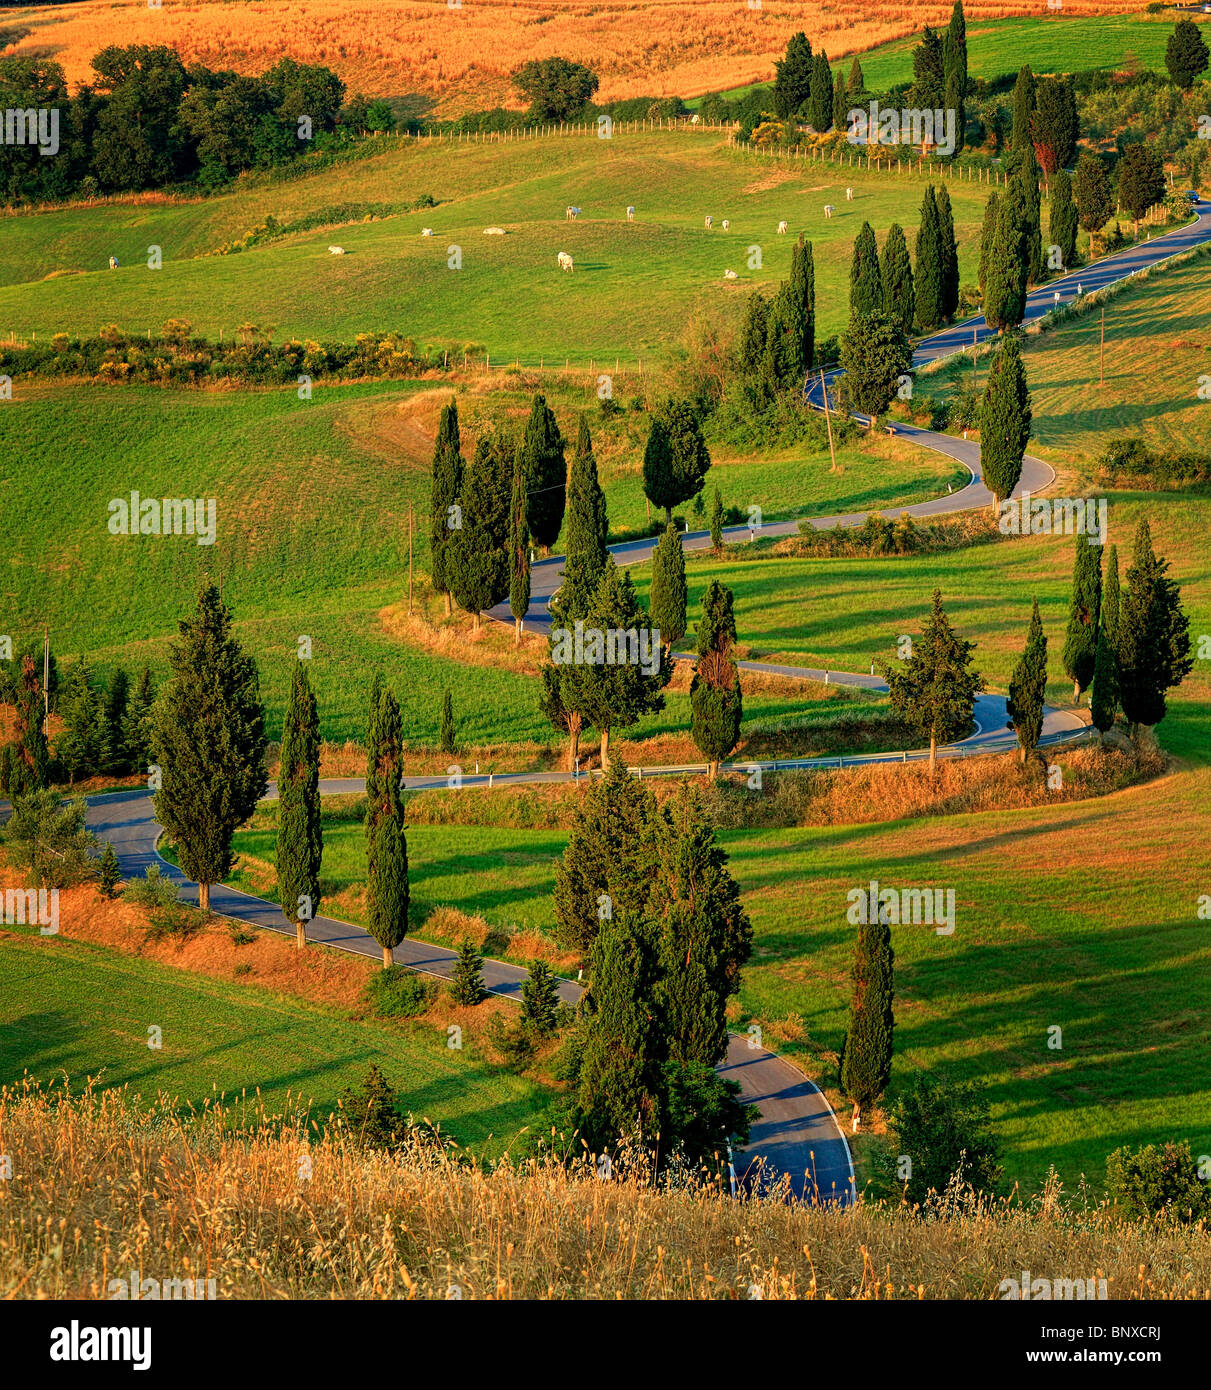 Winding rural road near the Tuscan town of Monticchiello Italy - Stock Image